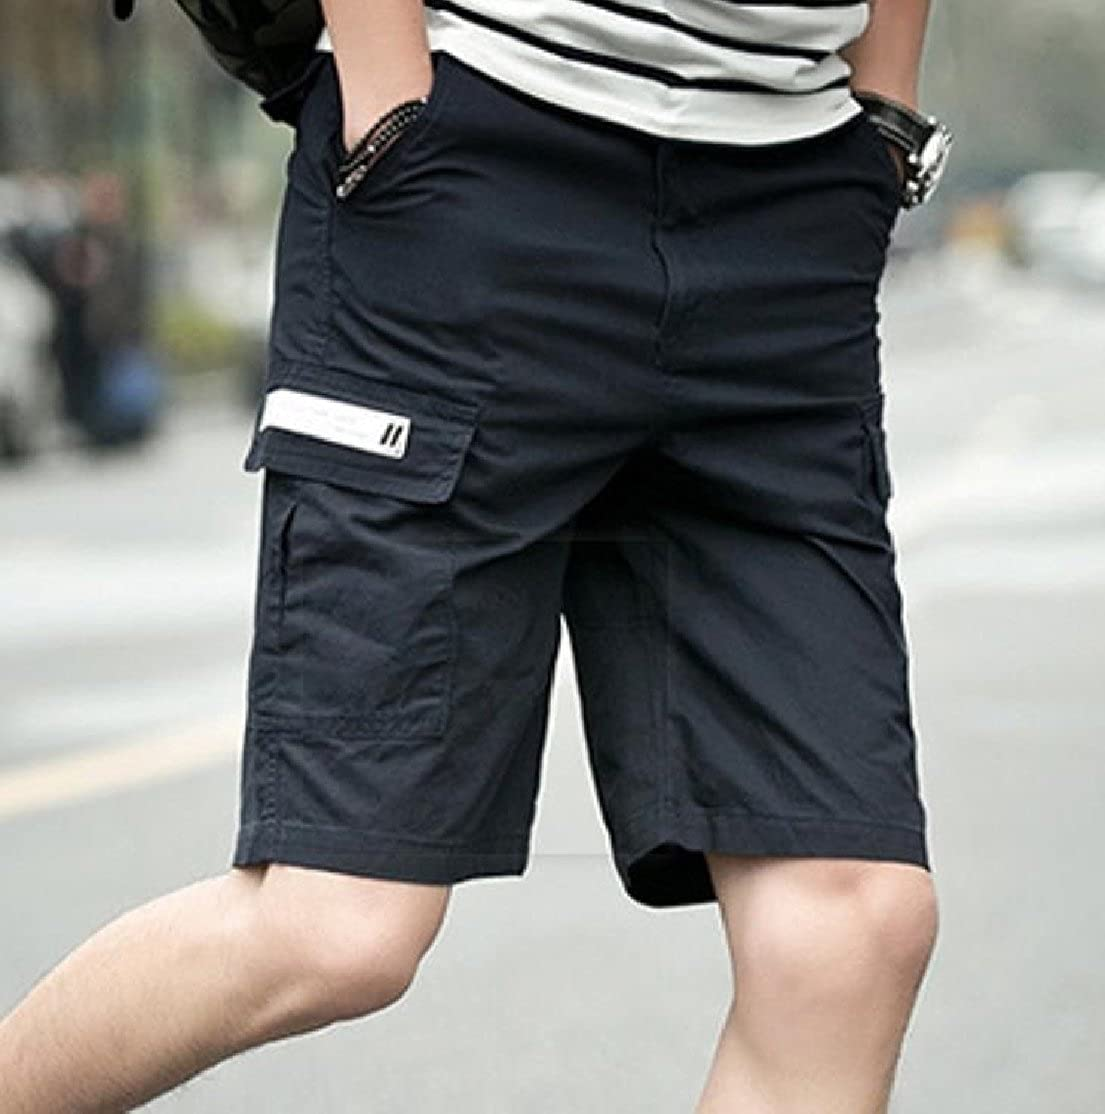 YUNY Mens Big and Tall Straight-Fit Thin Solid Cargo Half Pants Navy Blue 3XL